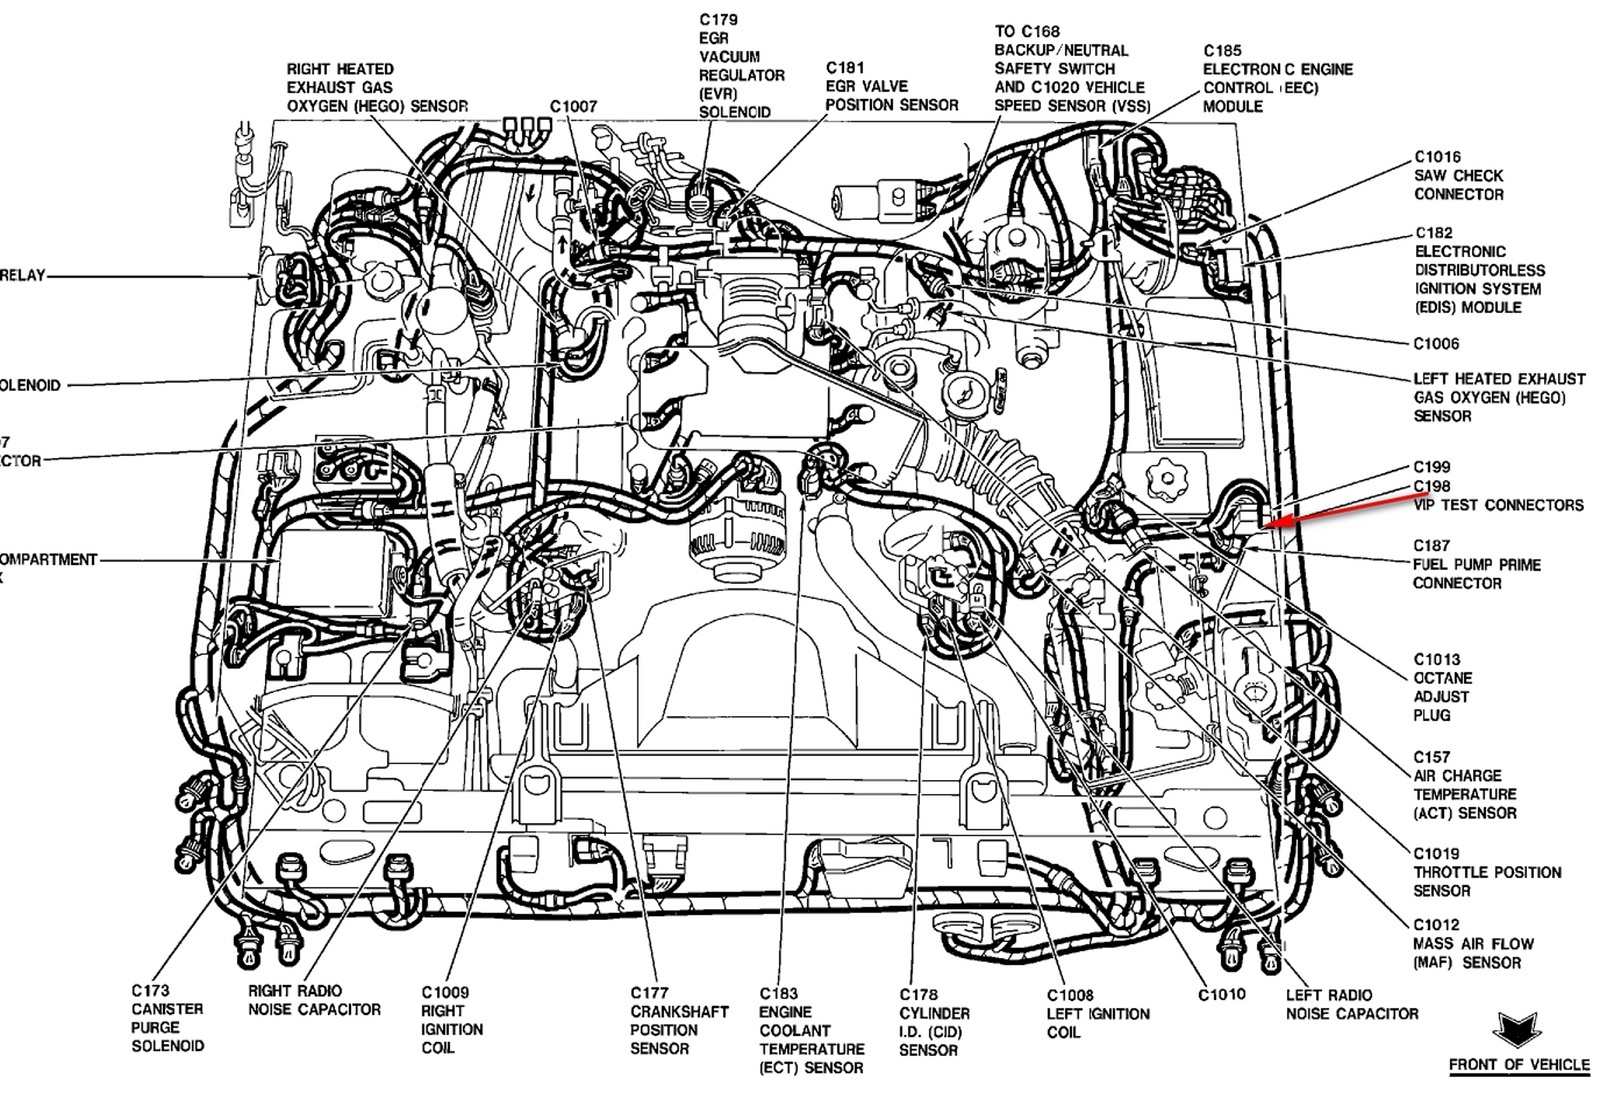 hight resolution of mercury grand marquis engine diagram wiring diagram todays 1989 nissan sentra engine diagram 1989 mercury grand marquis engine diagram